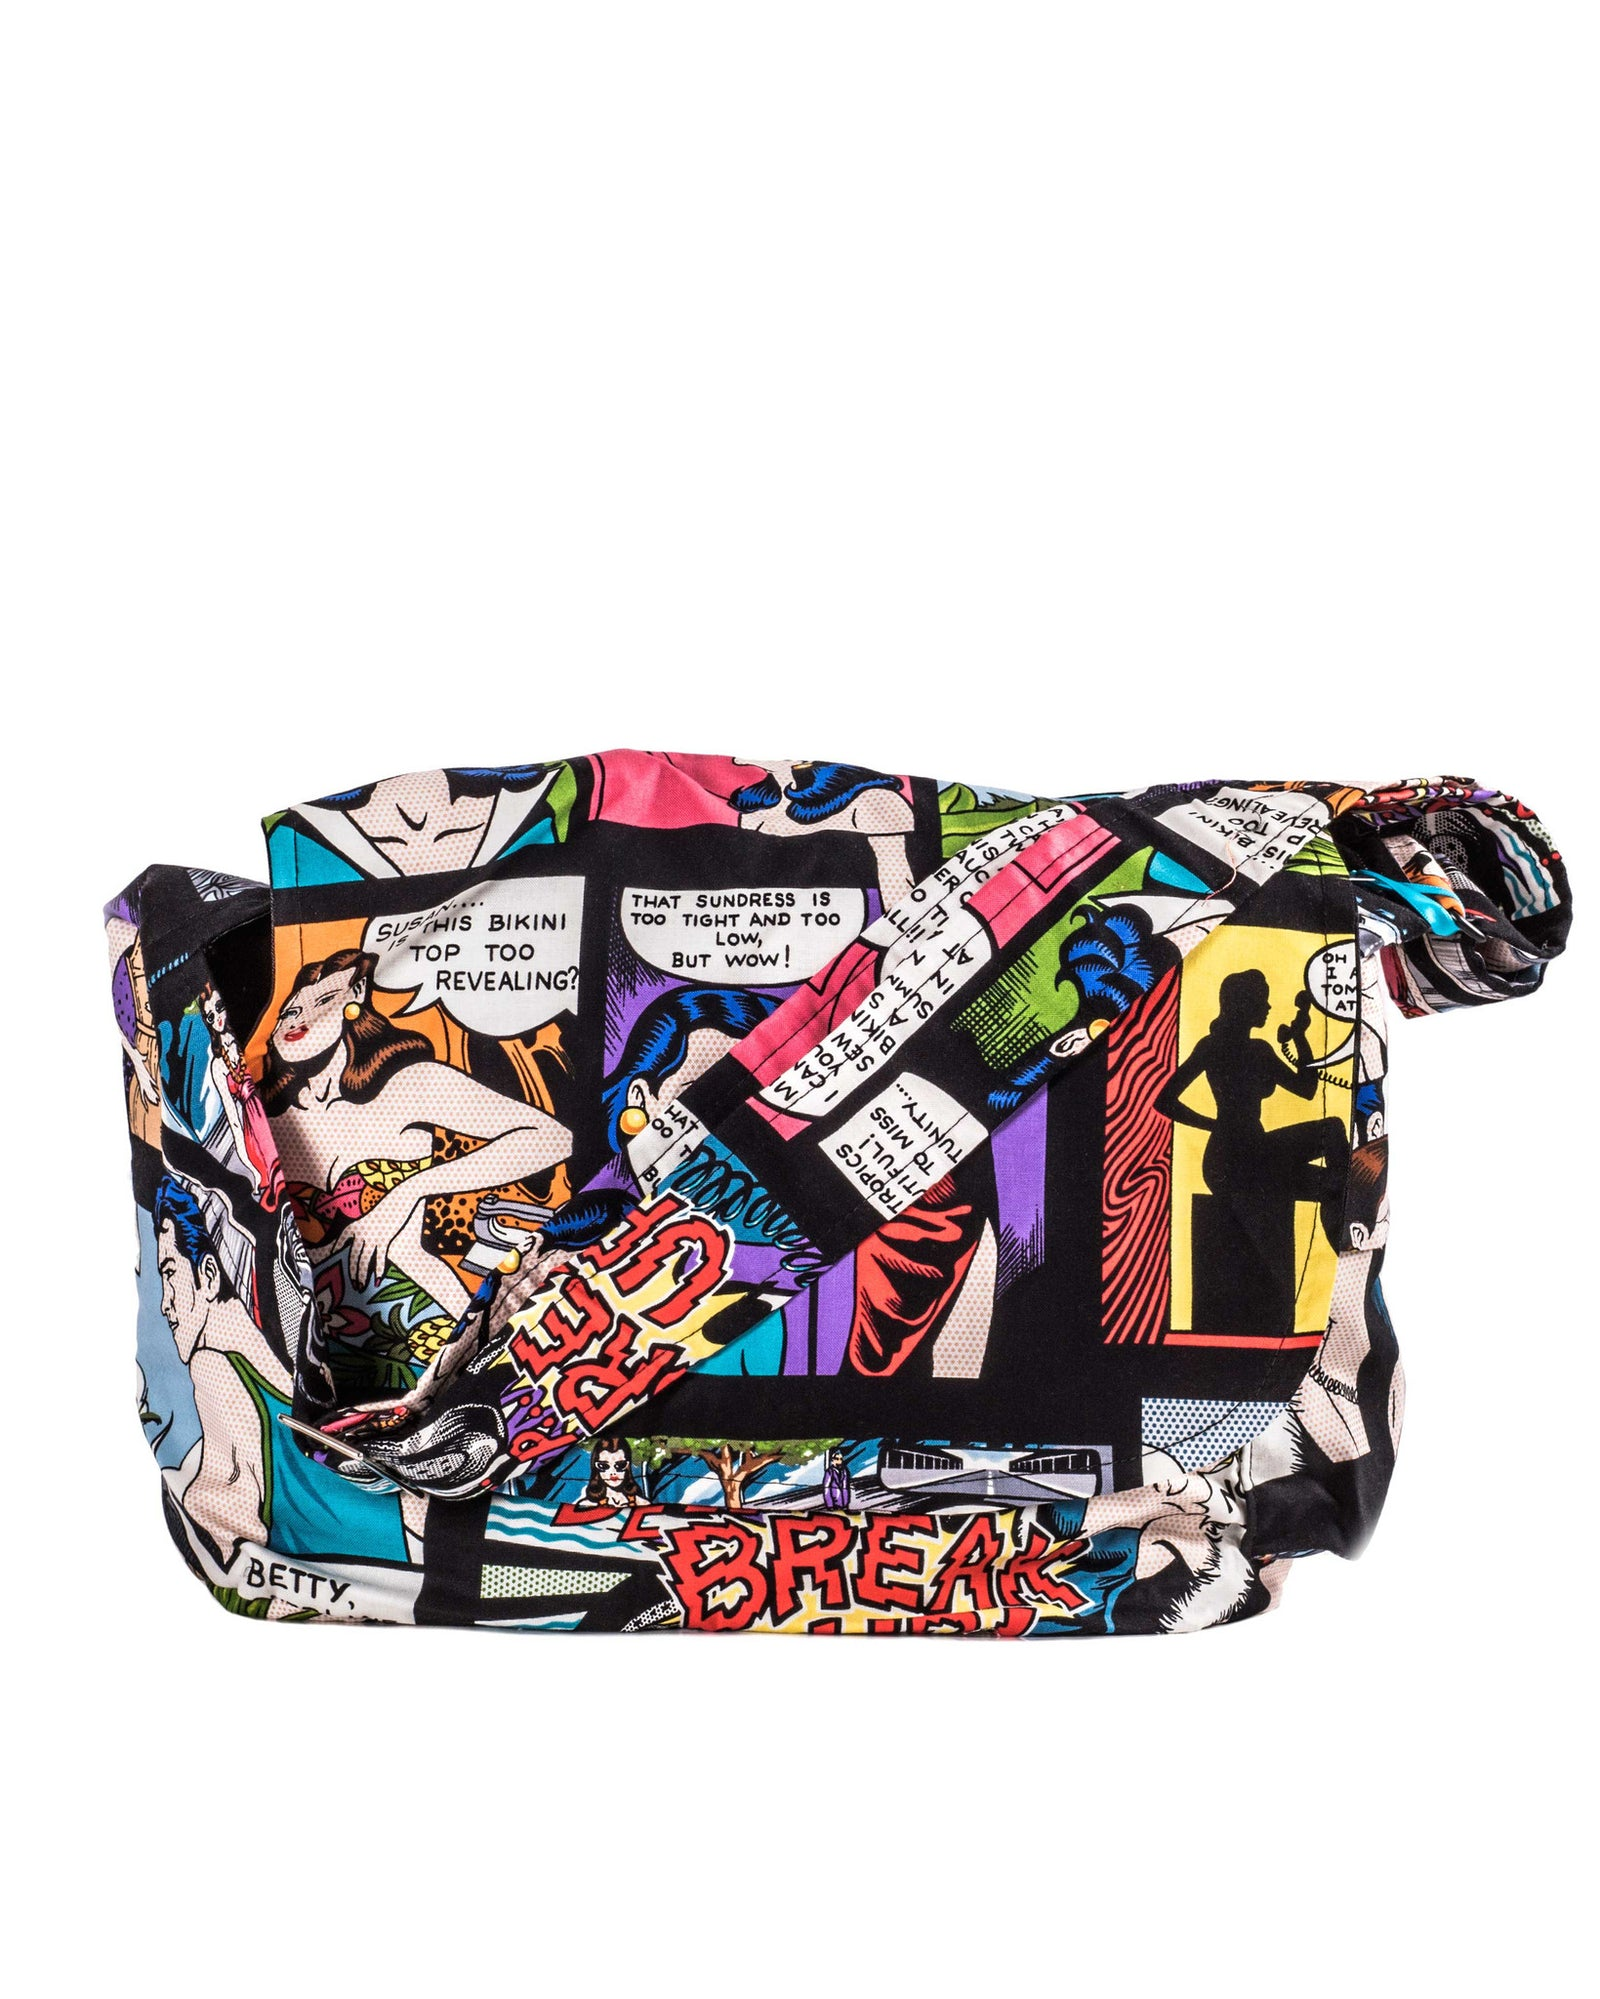 Retro Comic Strip Messenger Bag